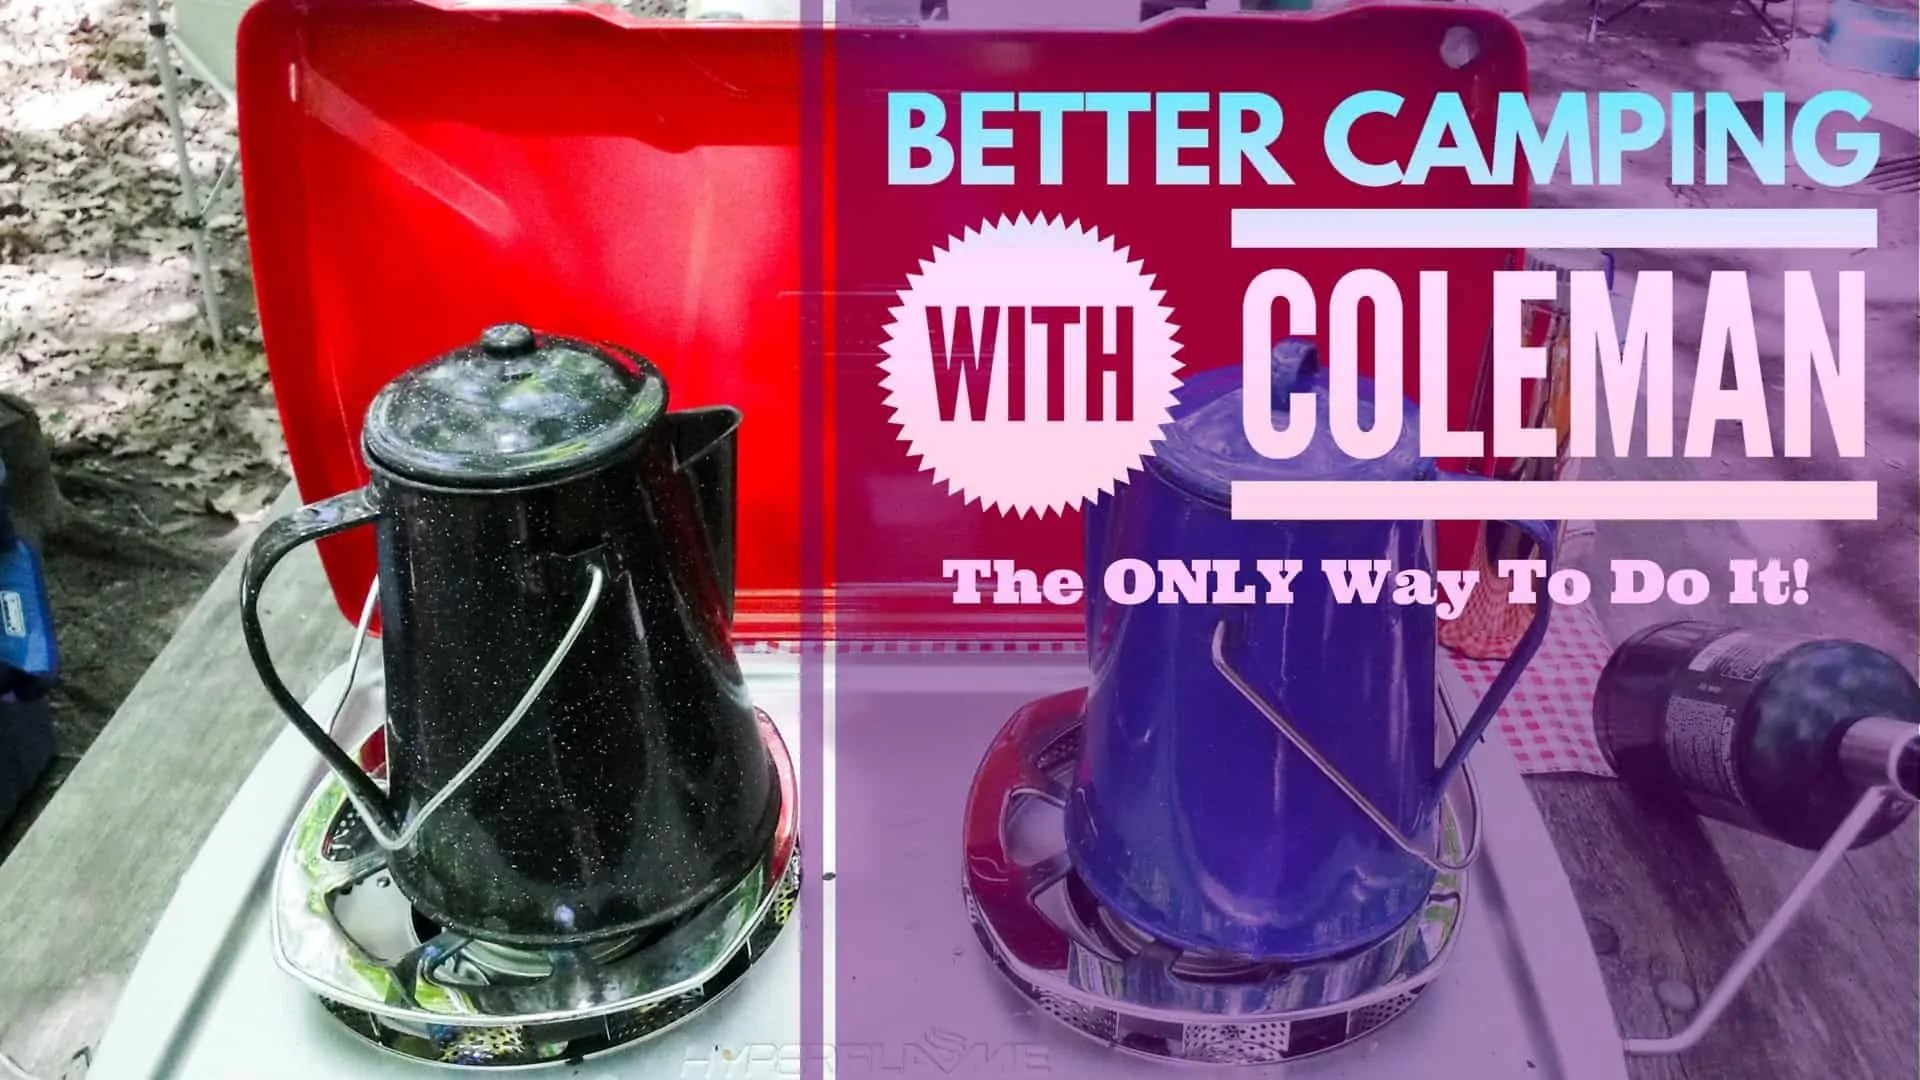 Better Camping with Coleman — The ONLY Way To Do It! (Featured Image)